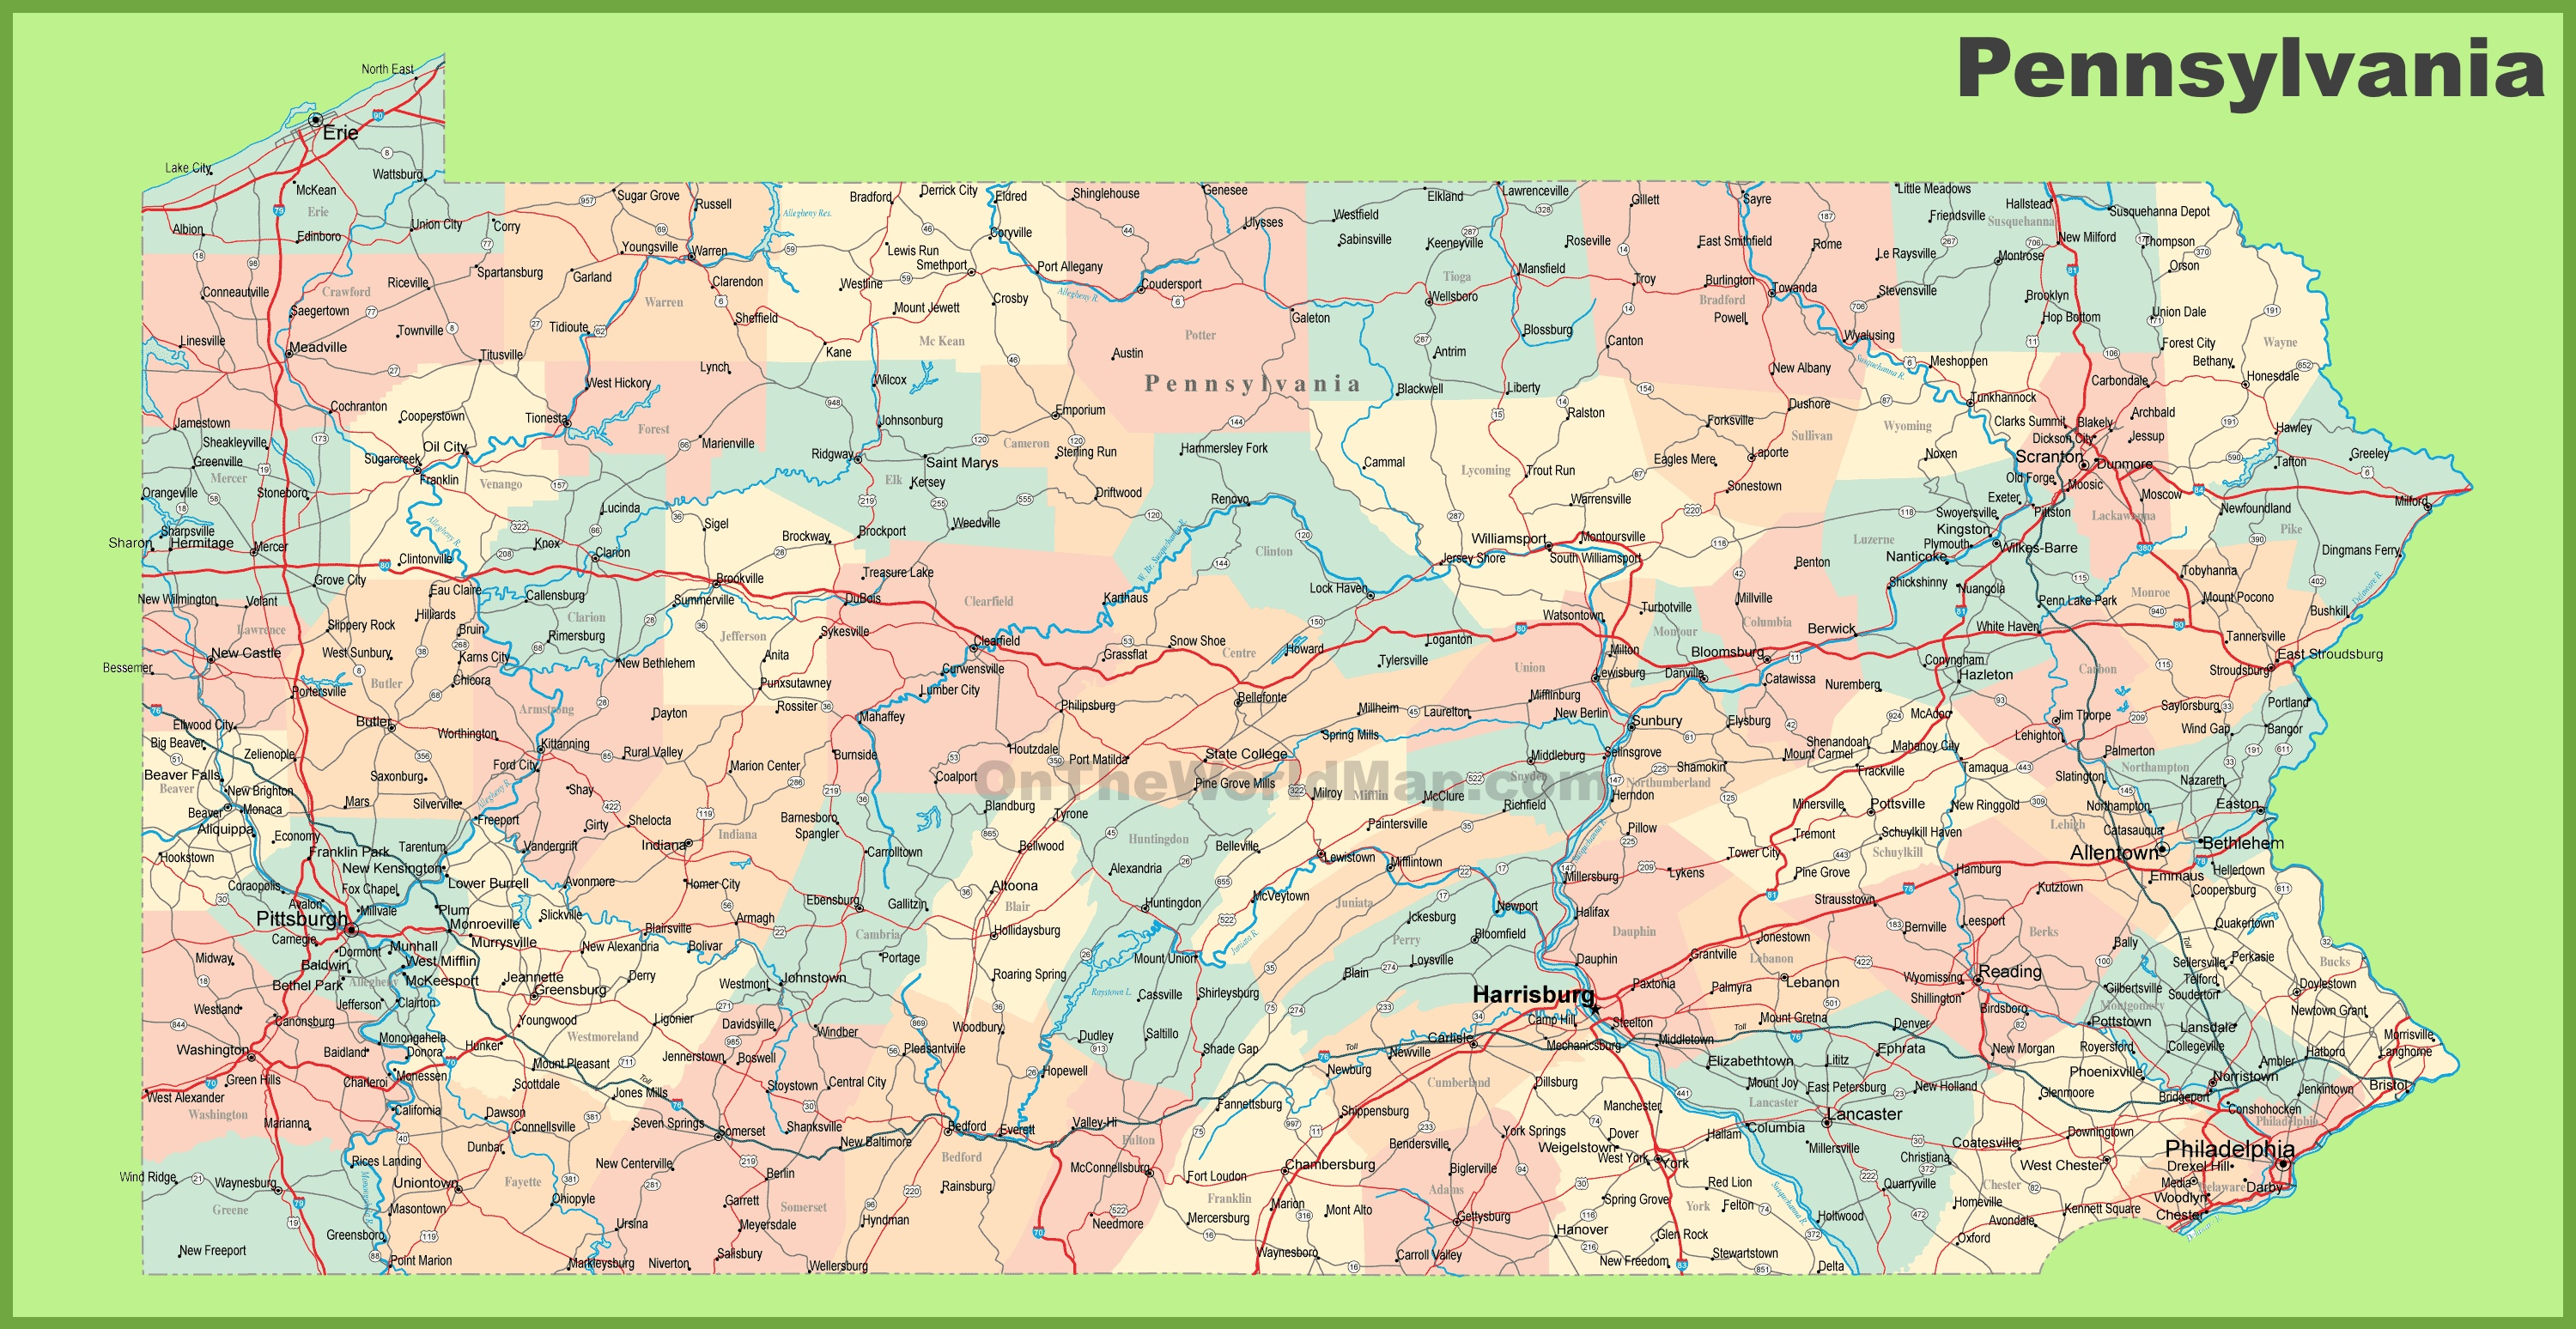 Road Map Of Pennsylvania With Cities - Pennyslvania map